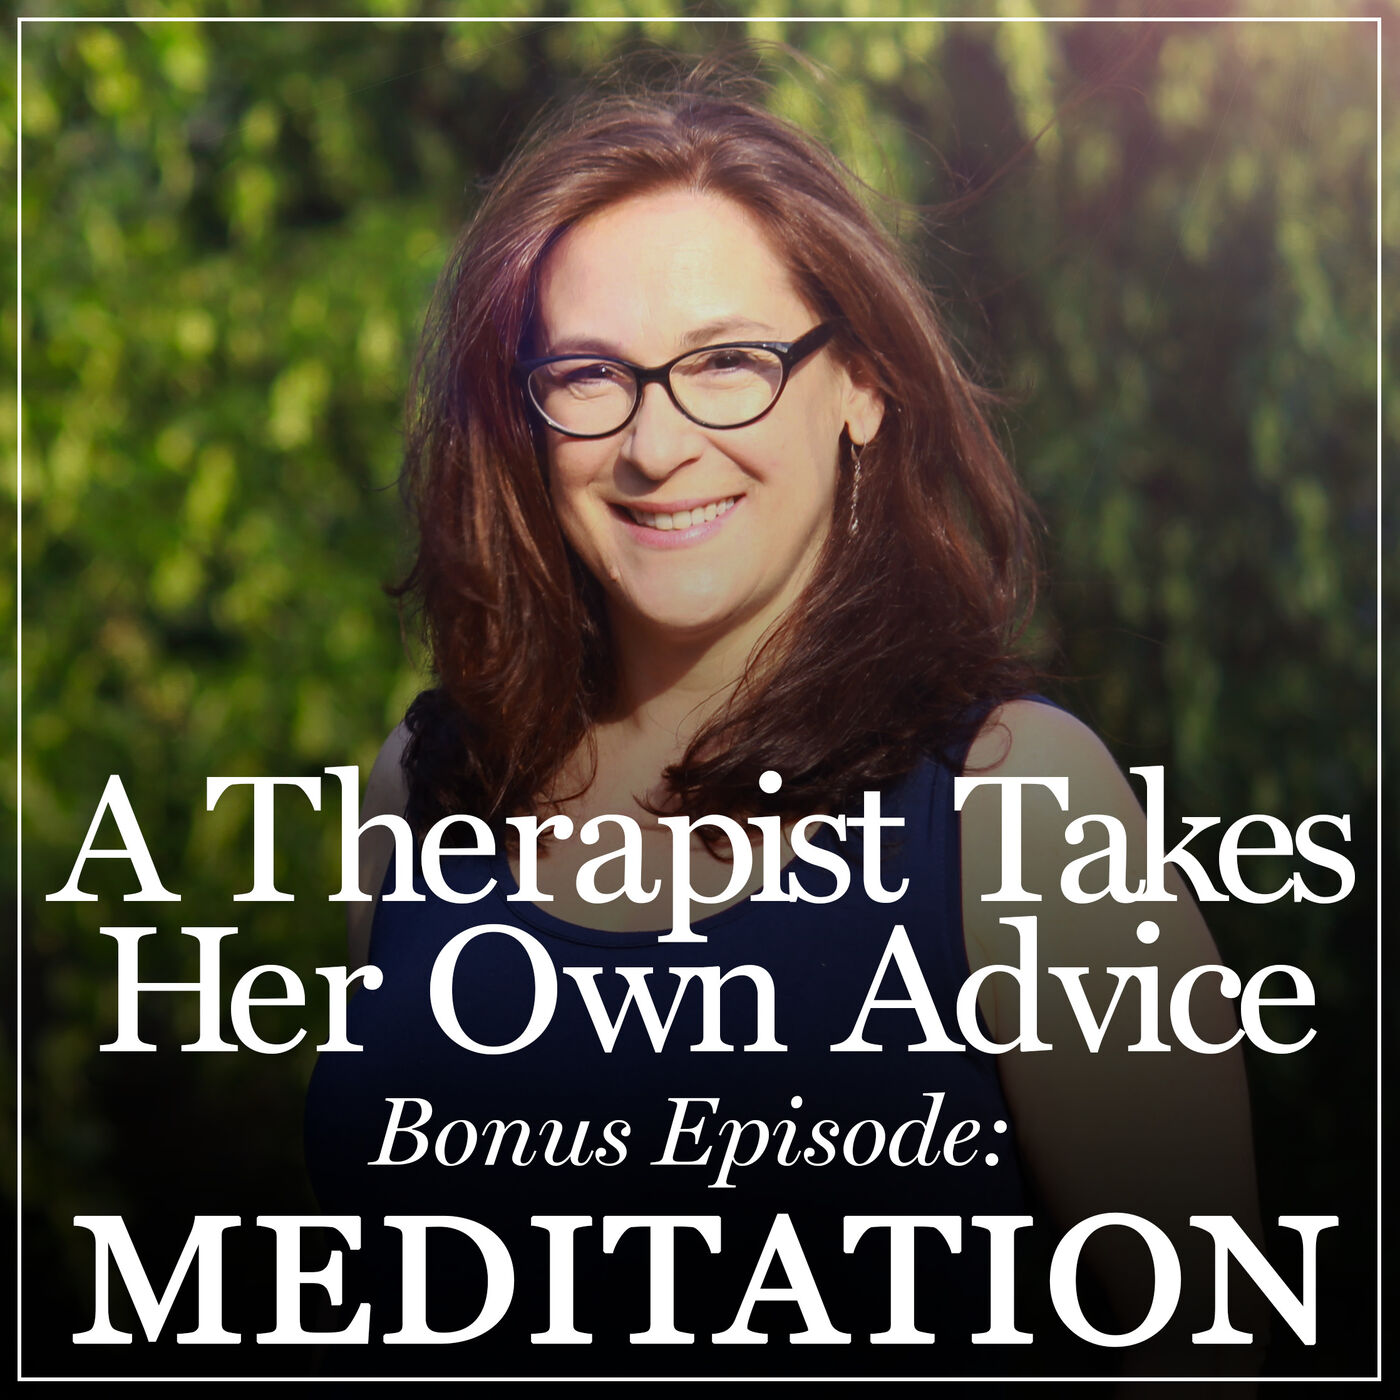 GUIDED MEDITATION - Paired Muscle Relaxation